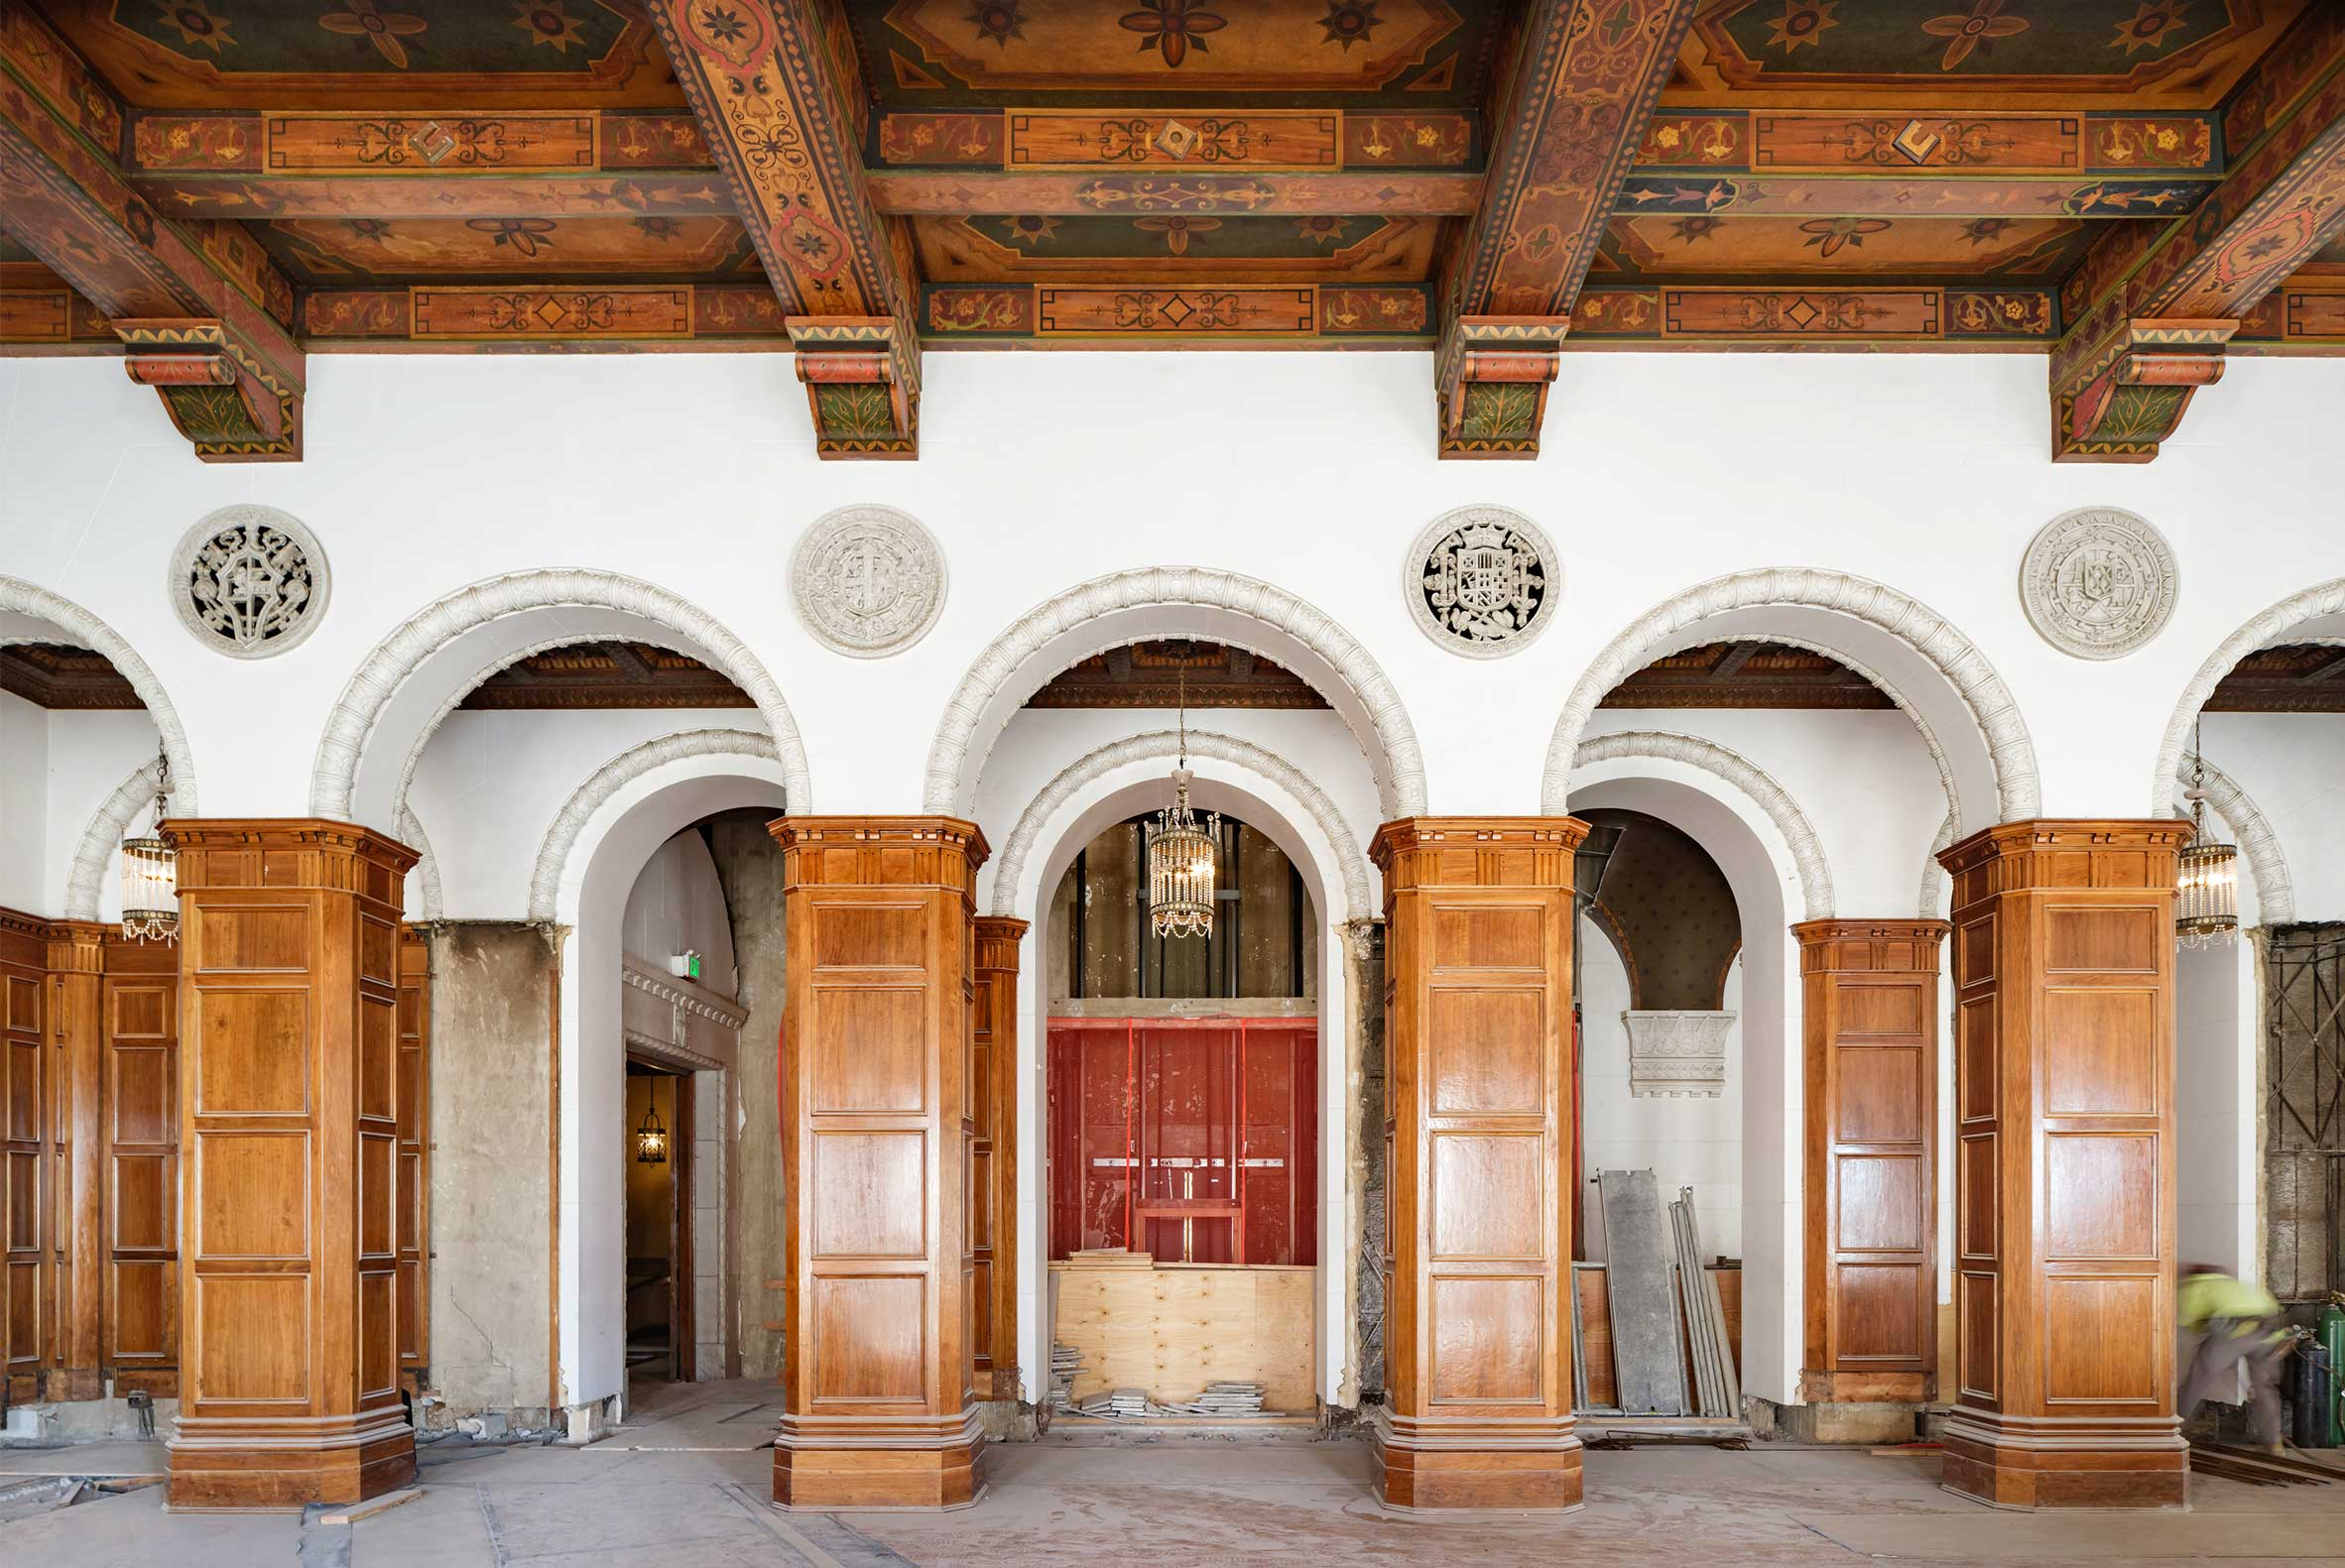 Historic Ballroom Renovation of The MacArthur with Painted Ceiling and Wooden Columns